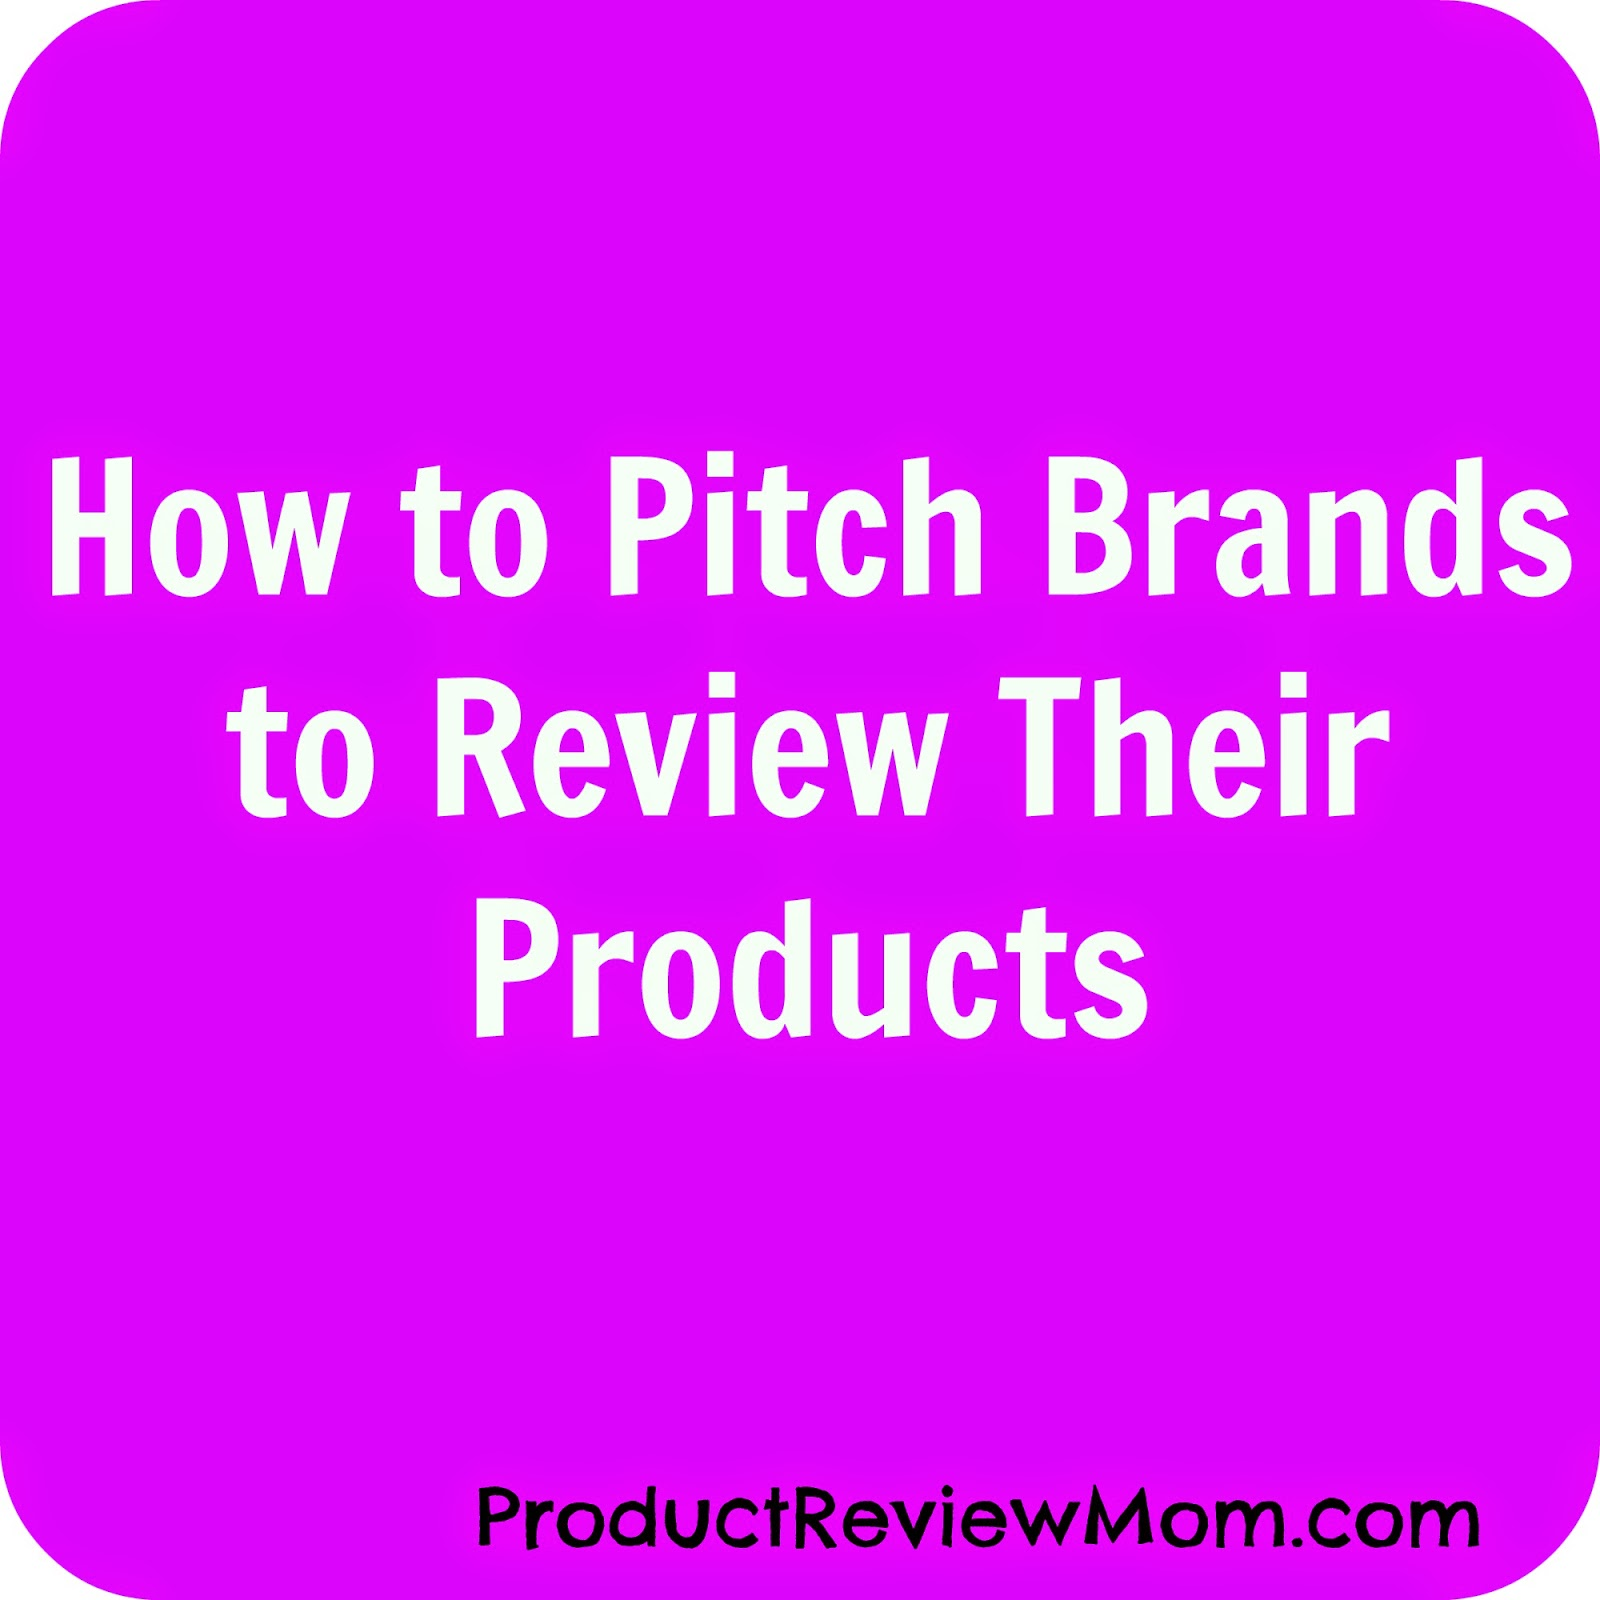 How to Pitch Brands to Review Their Products #BloggingTips via www.Productreviewmom.com